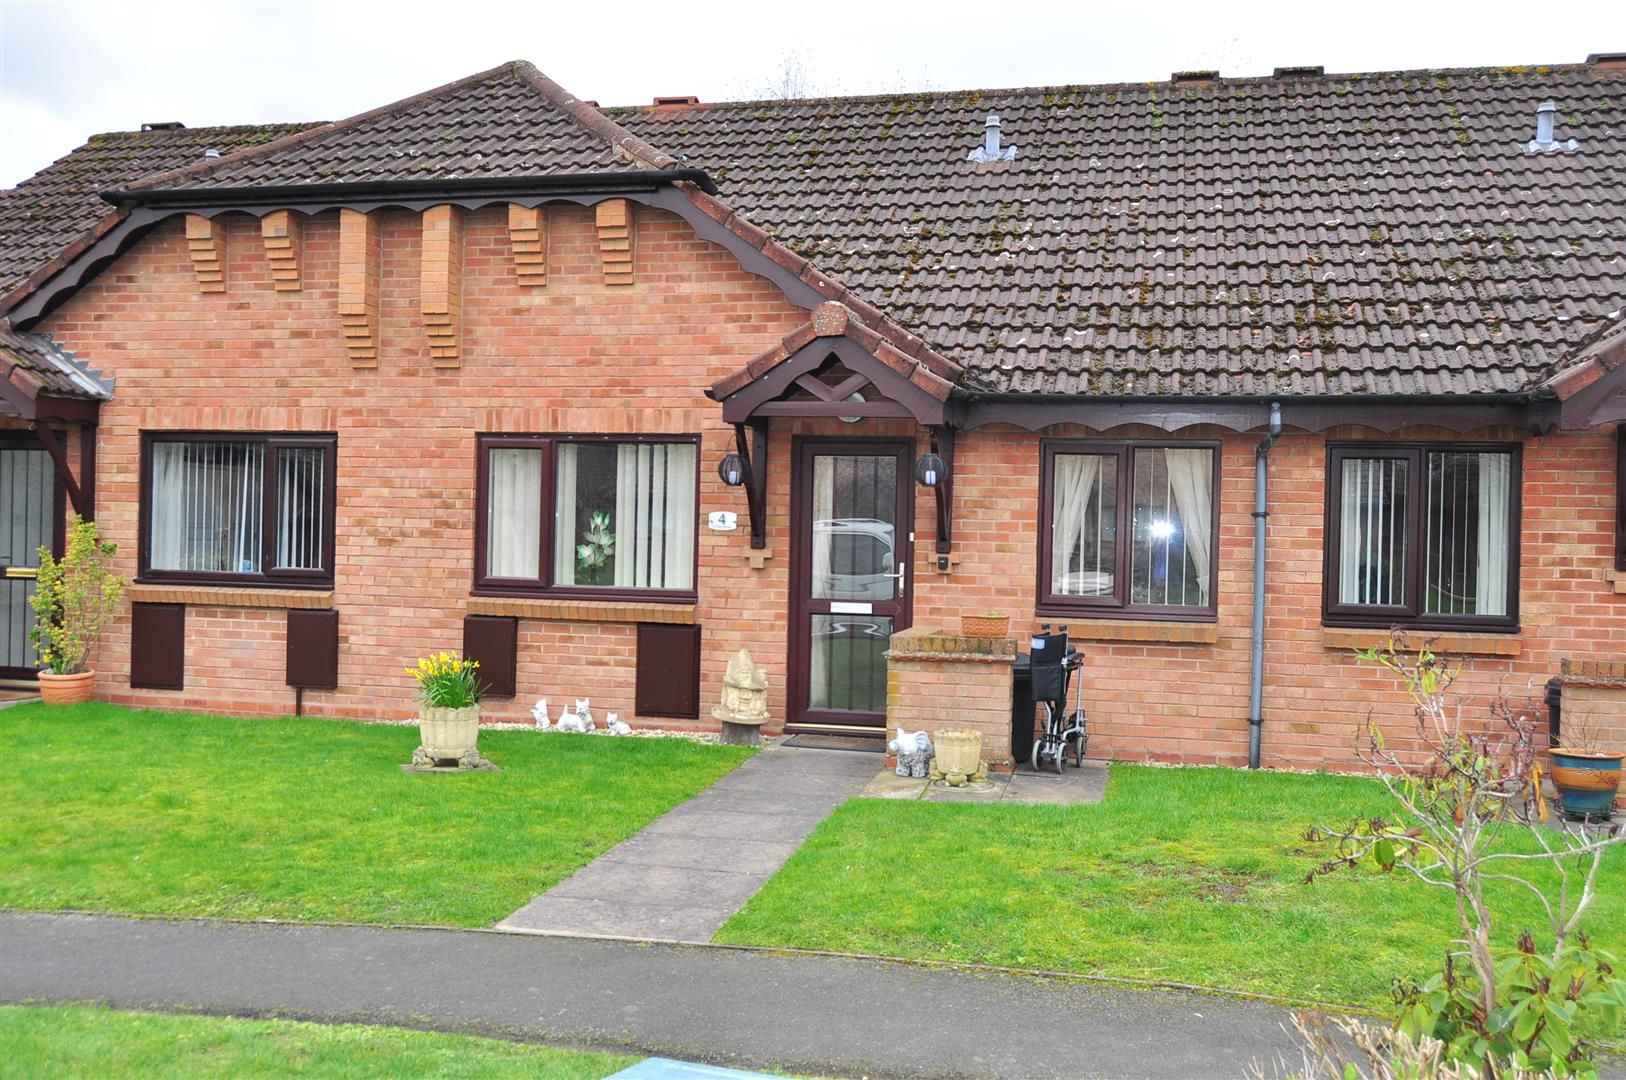 2 bed terraced-bungalow for sale, B63